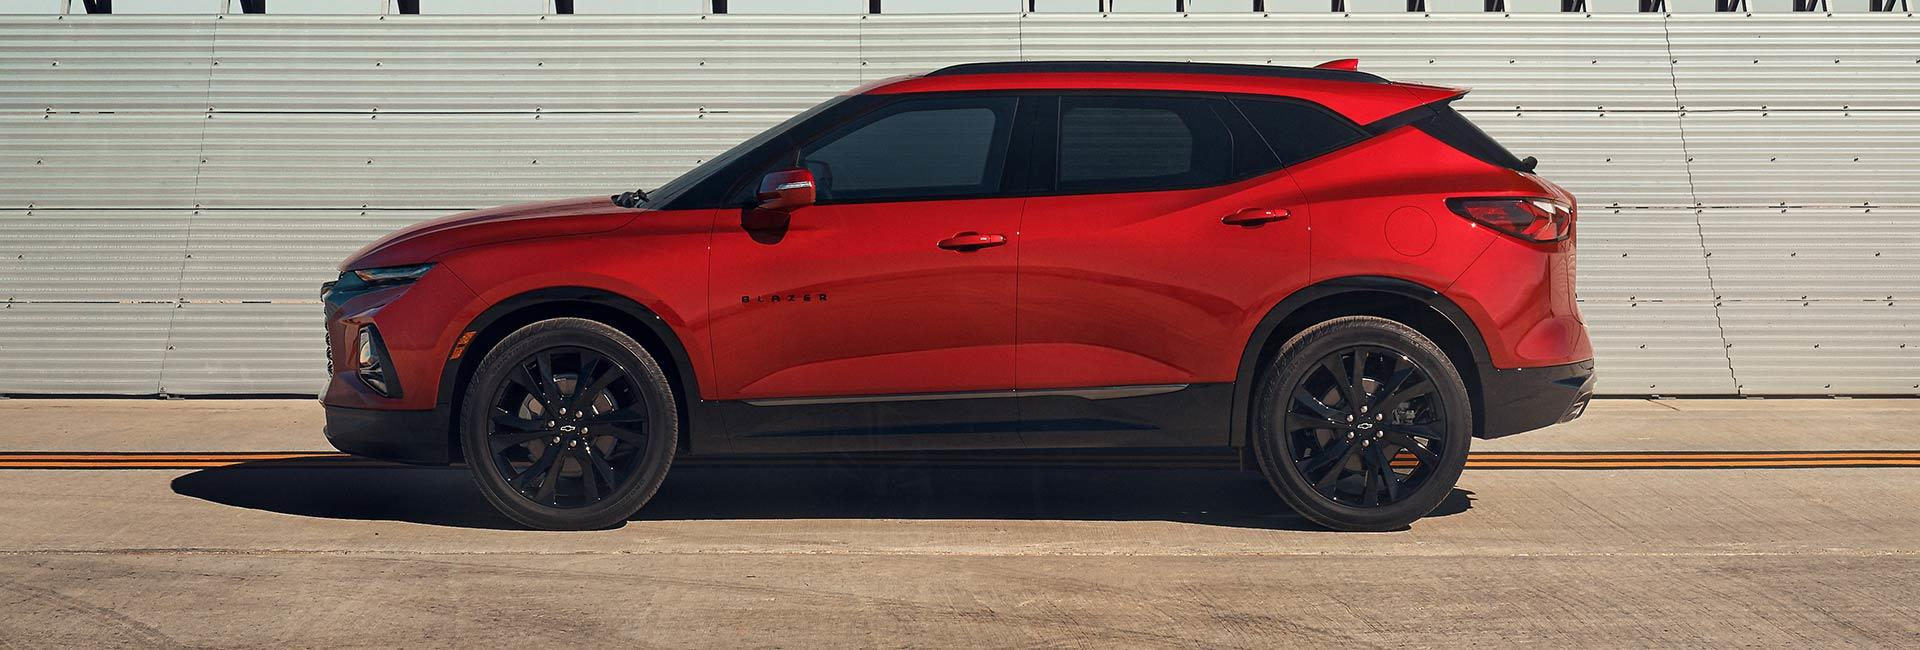 Picture of the 2020 Chevy Blazer for sale at Spitzer Chevy Northfield, Ohio